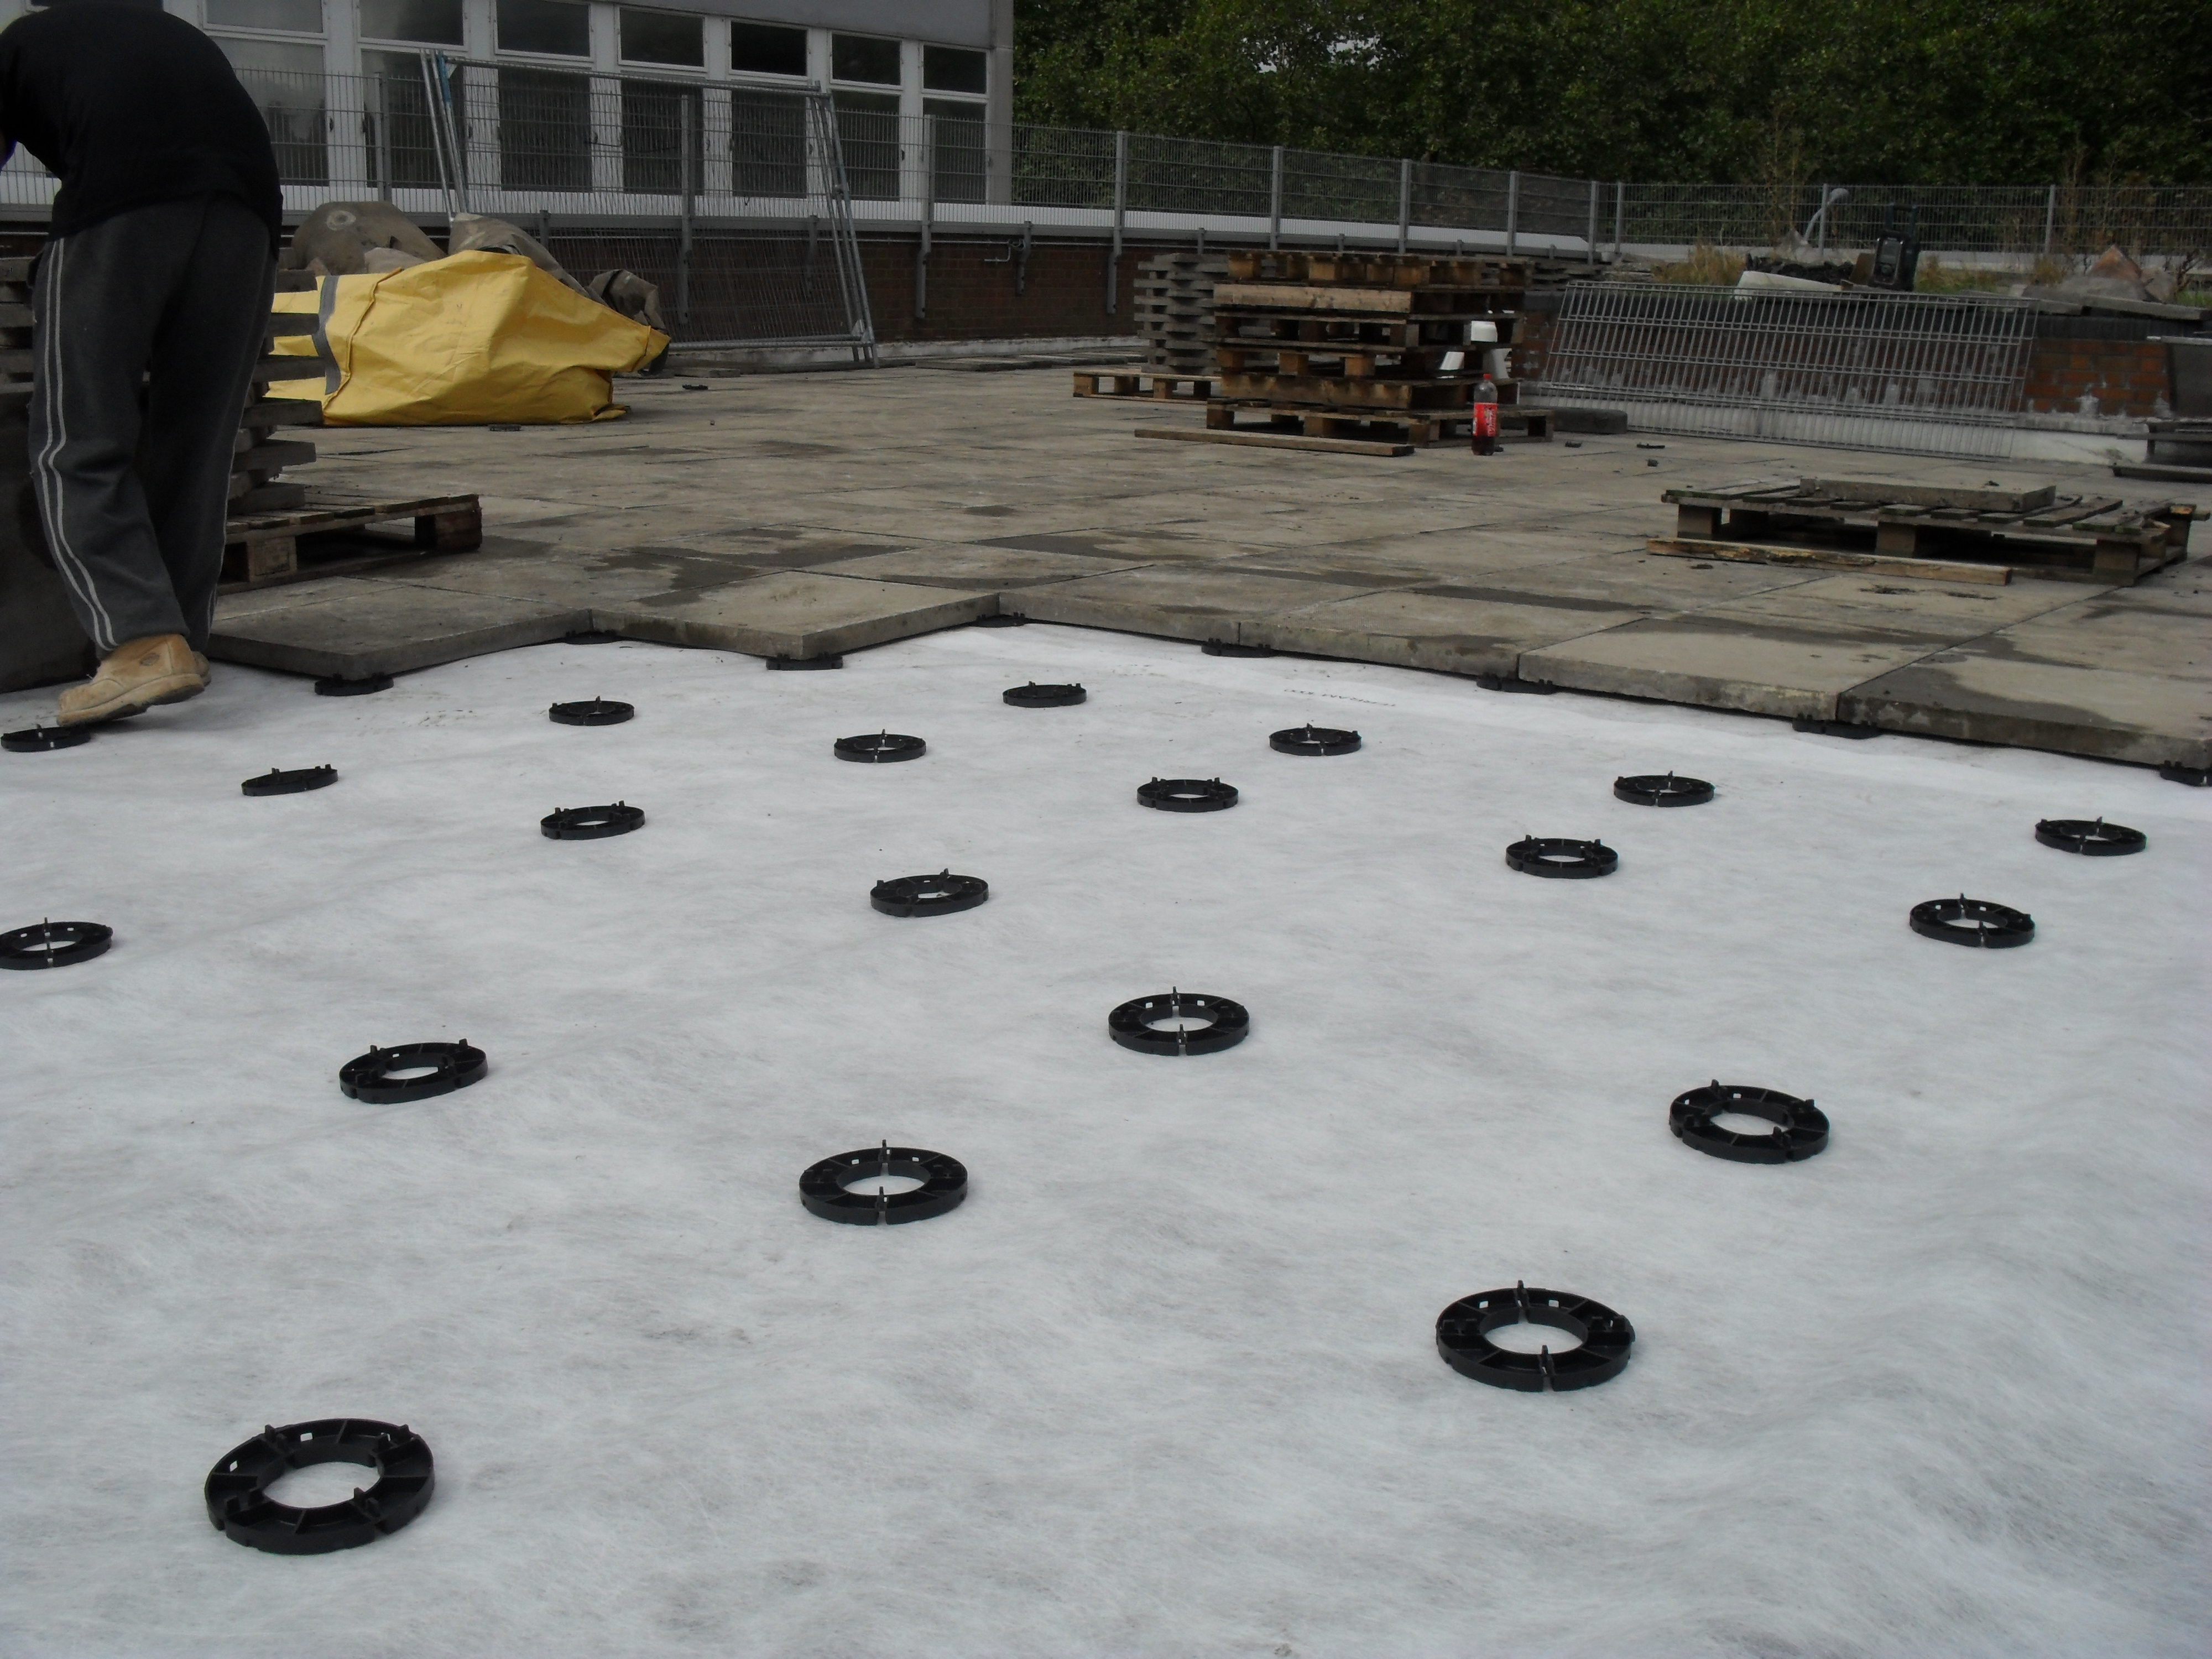 17mm plastic paving pads on podium deck